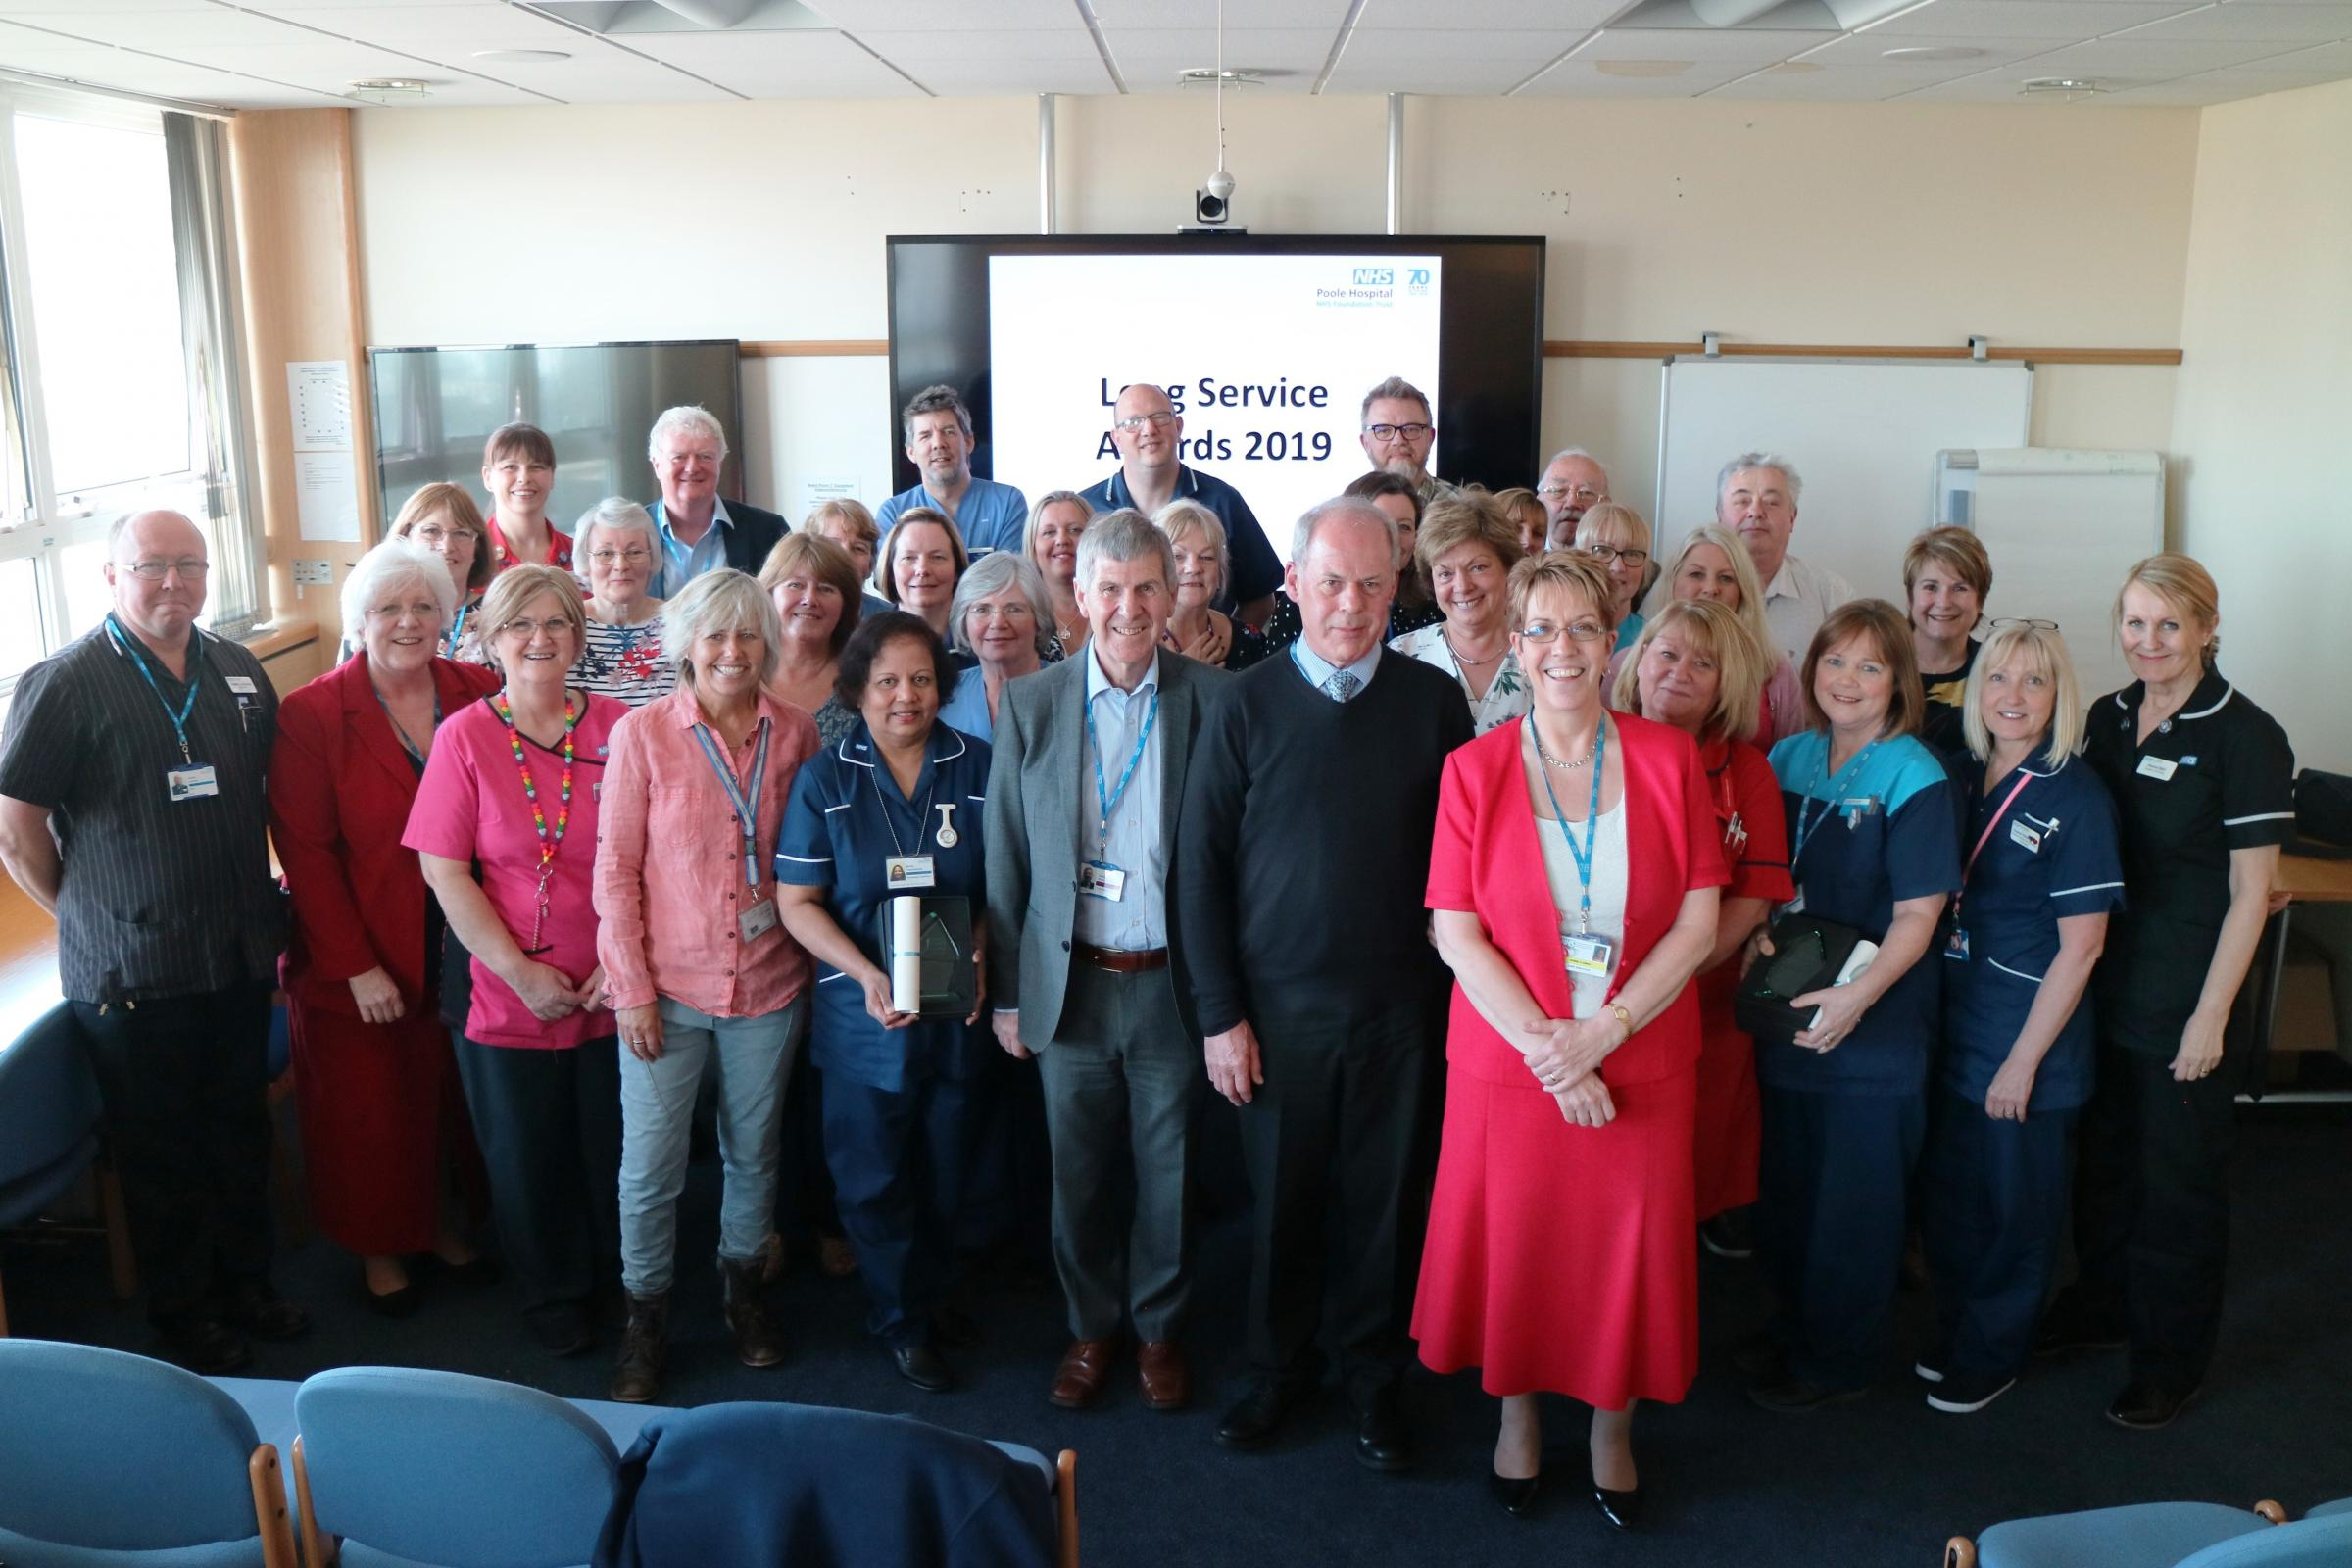 Poole's Super Staff celebrate their long service